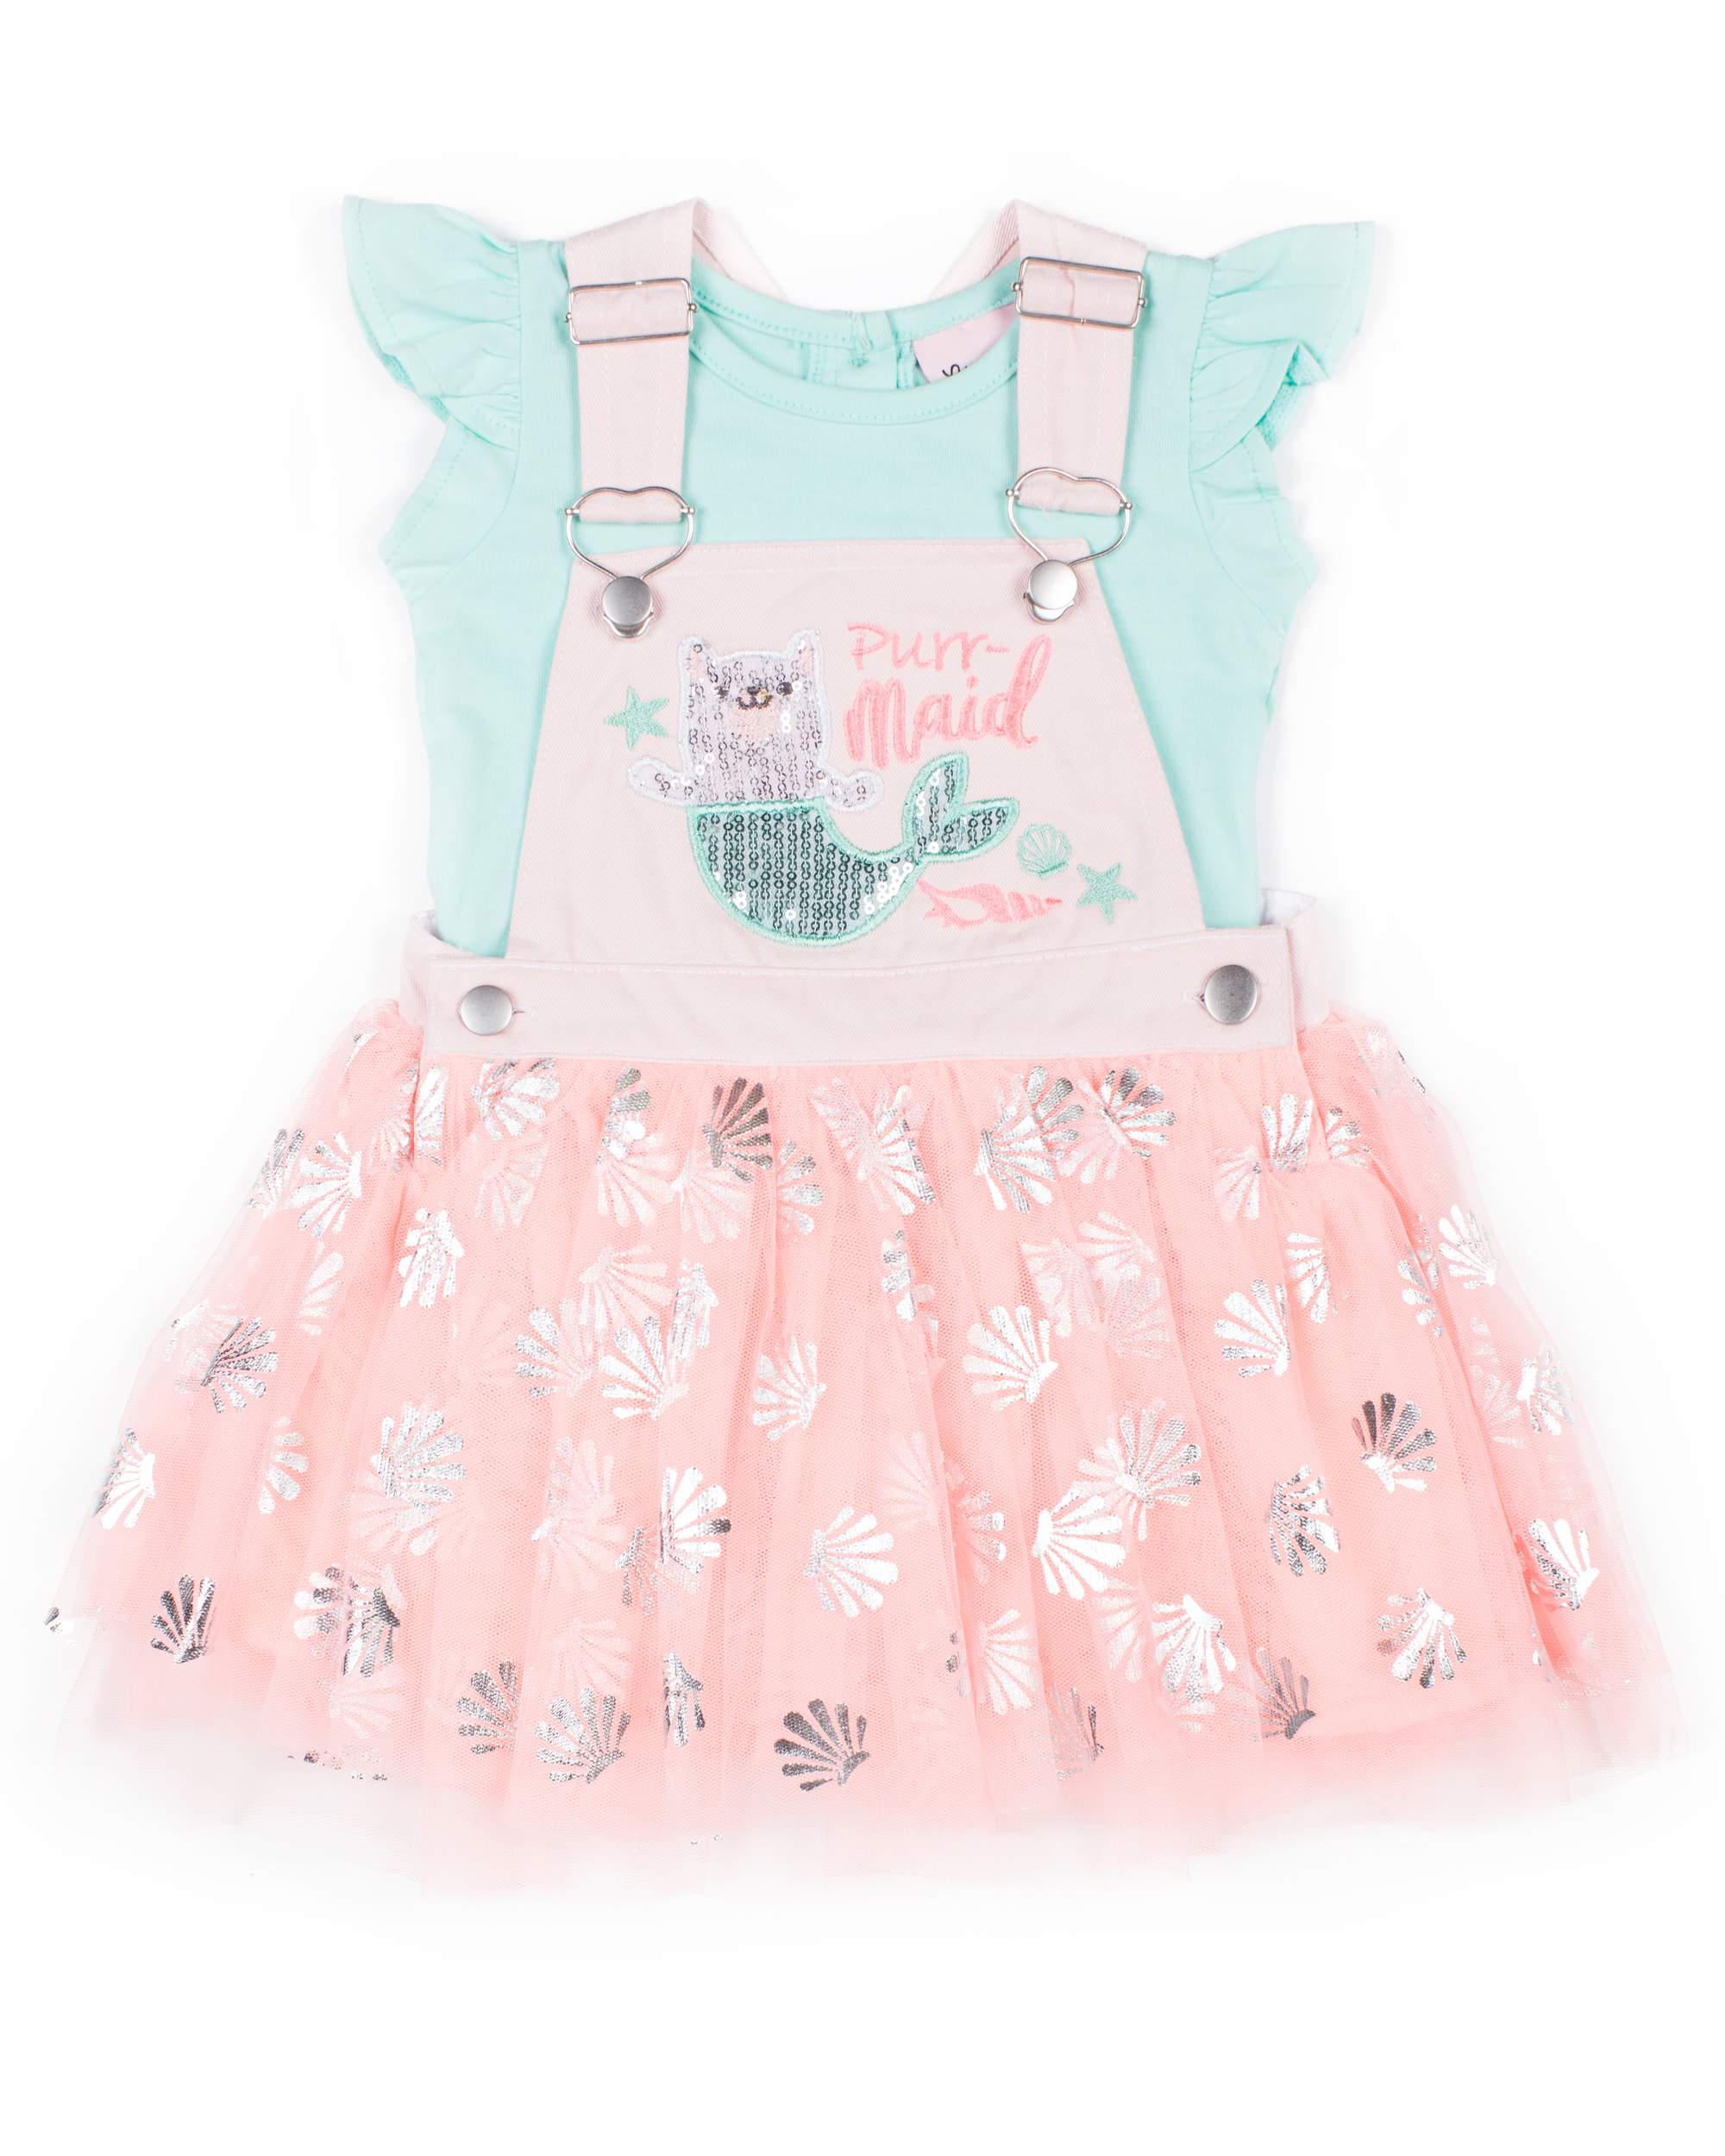 Mermaid Foil Printed Skirtall and Tee, 2-Piece Outfit Set (Little Girls)